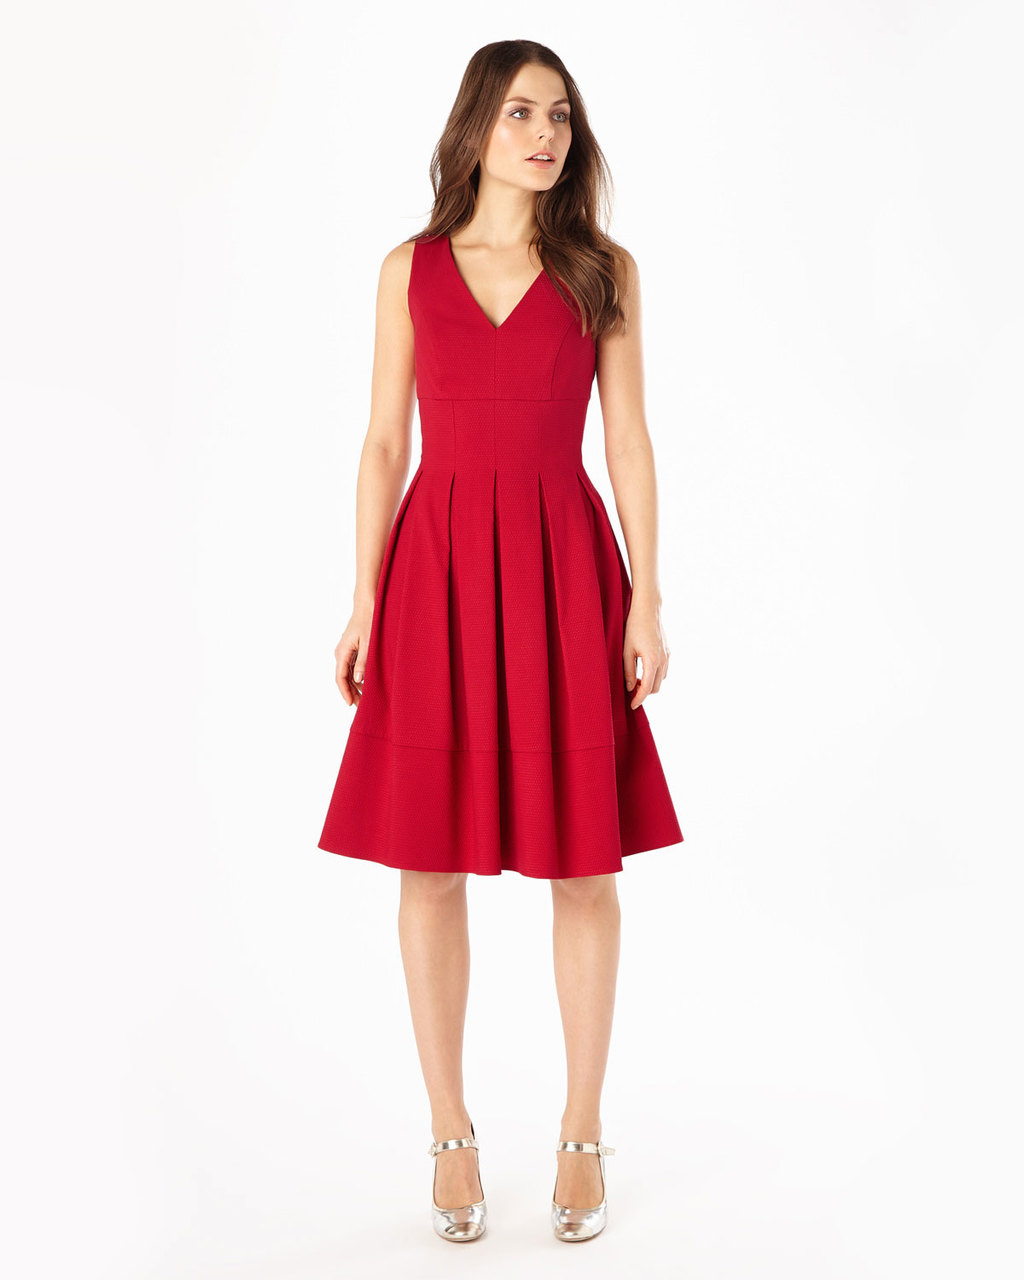 Mary Pintuck Dress - neckline: low v-neck; pattern: plain; sleeve style: sleeveless; style: prom dress; predominant colour: true red; occasions: evening, occasion; length: on the knee; fit: fitted at waist & bust; fibres: polyester/polyamide - 100%; hip detail: structured pleats at hip; sleeve length: sleeveless; texture group: crepes; pattern type: fabric; season: s/s 2016; wardrobe: event